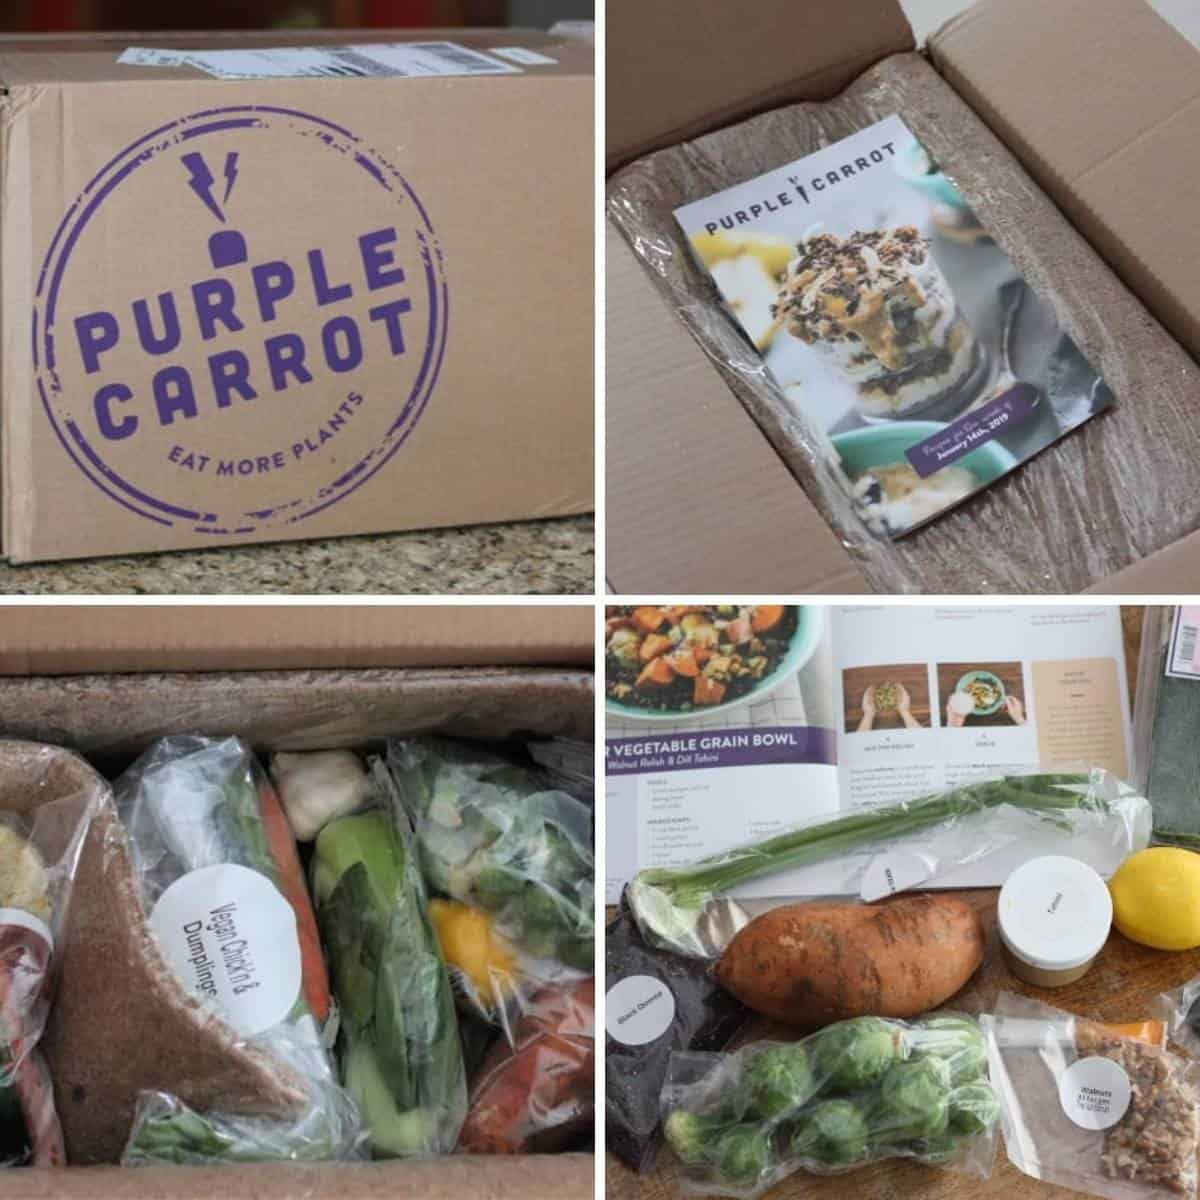 my experience getting meal kits from purple carrot